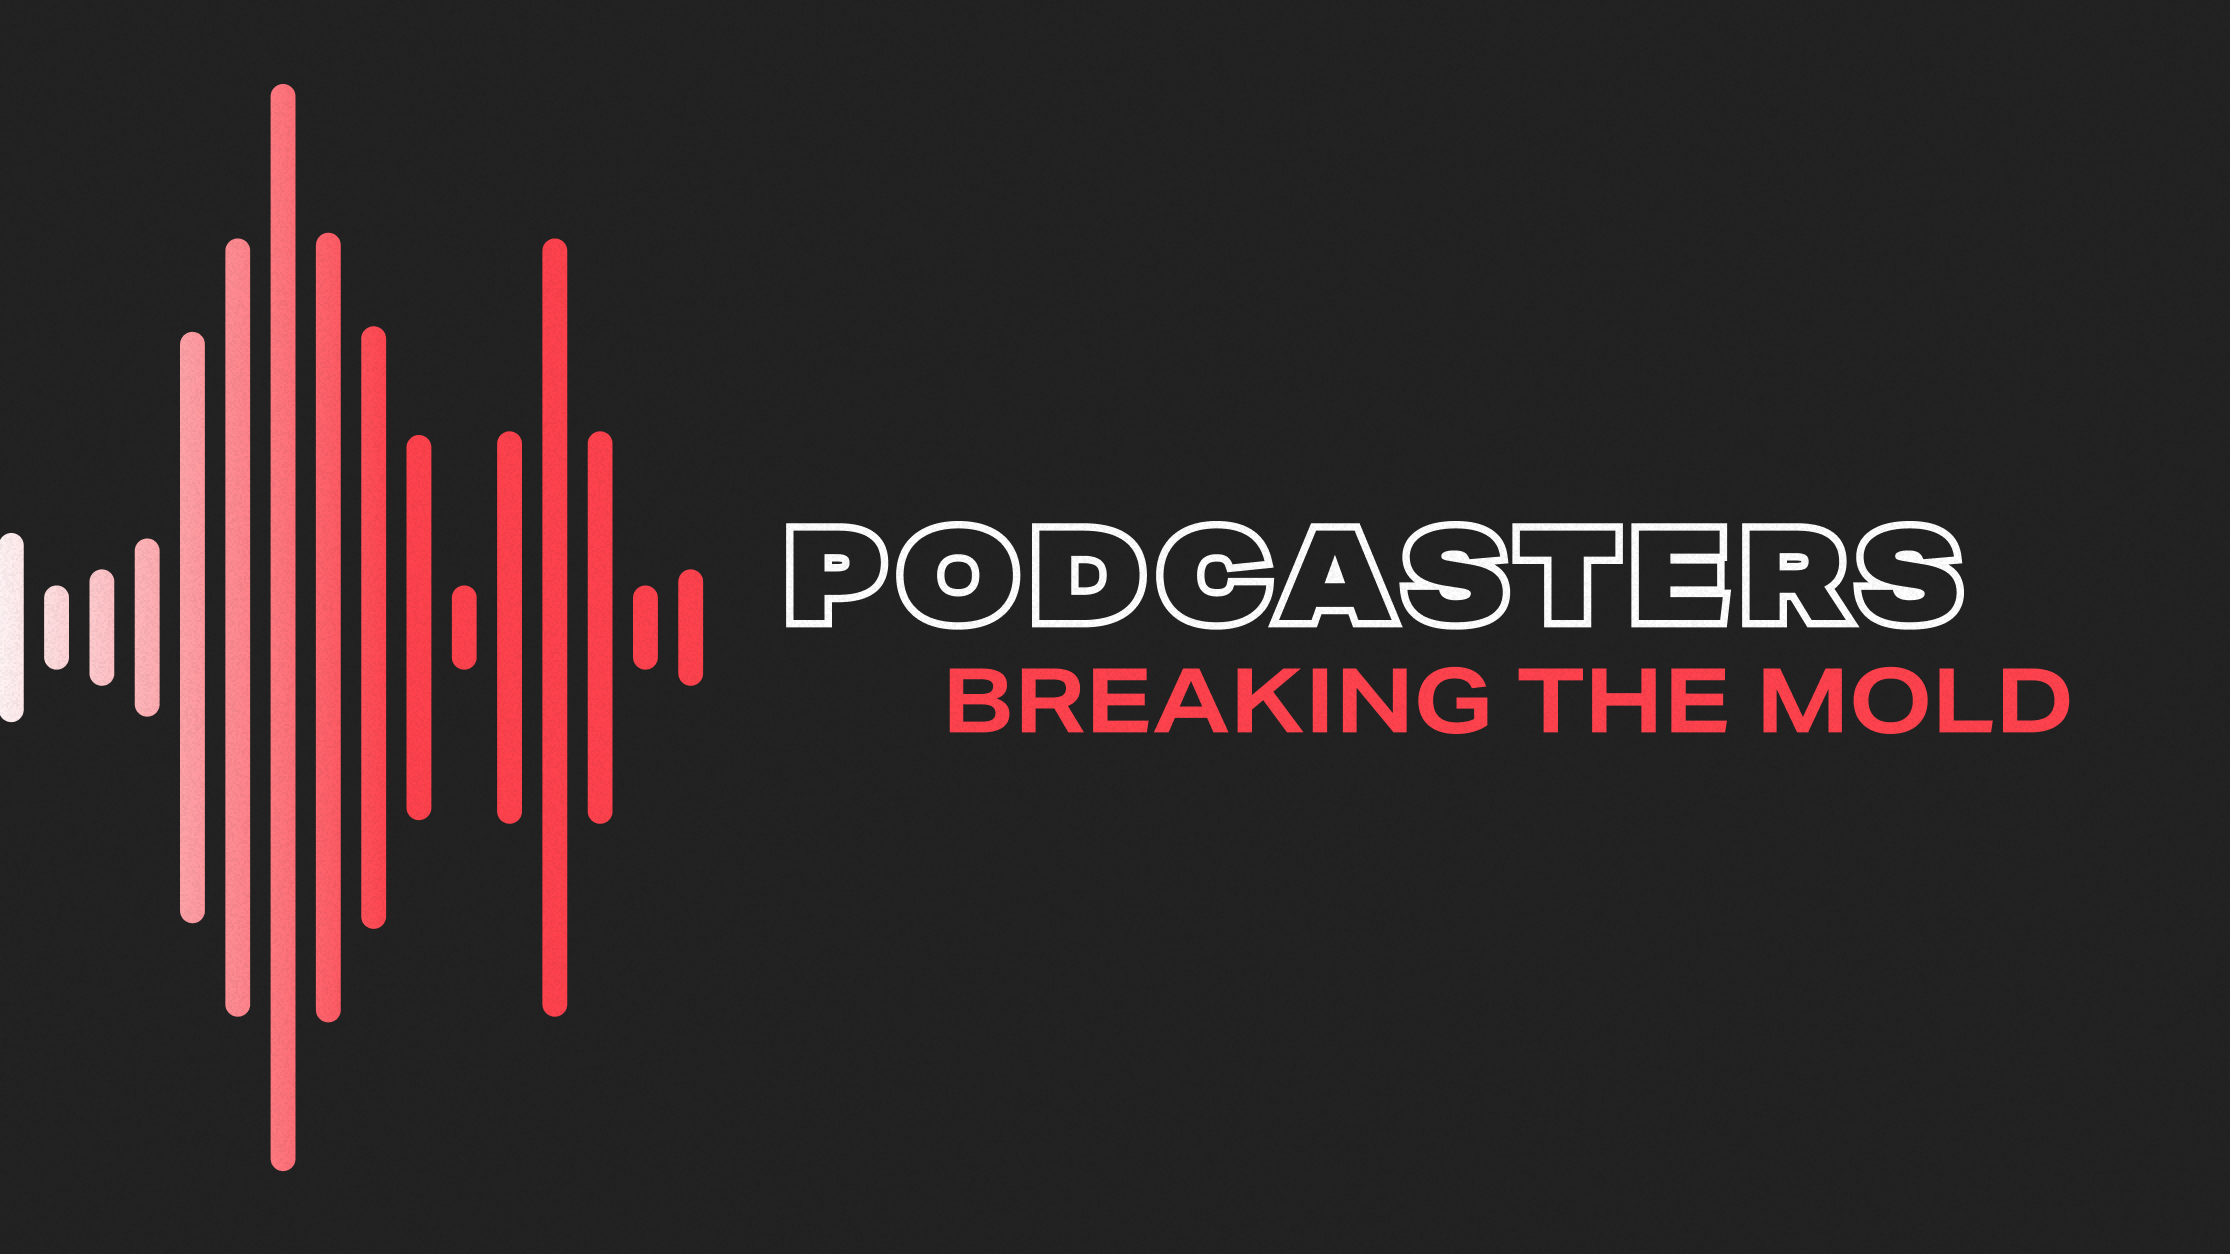 Here's a selection of 5 Patreon podcasters who are breaking the mold